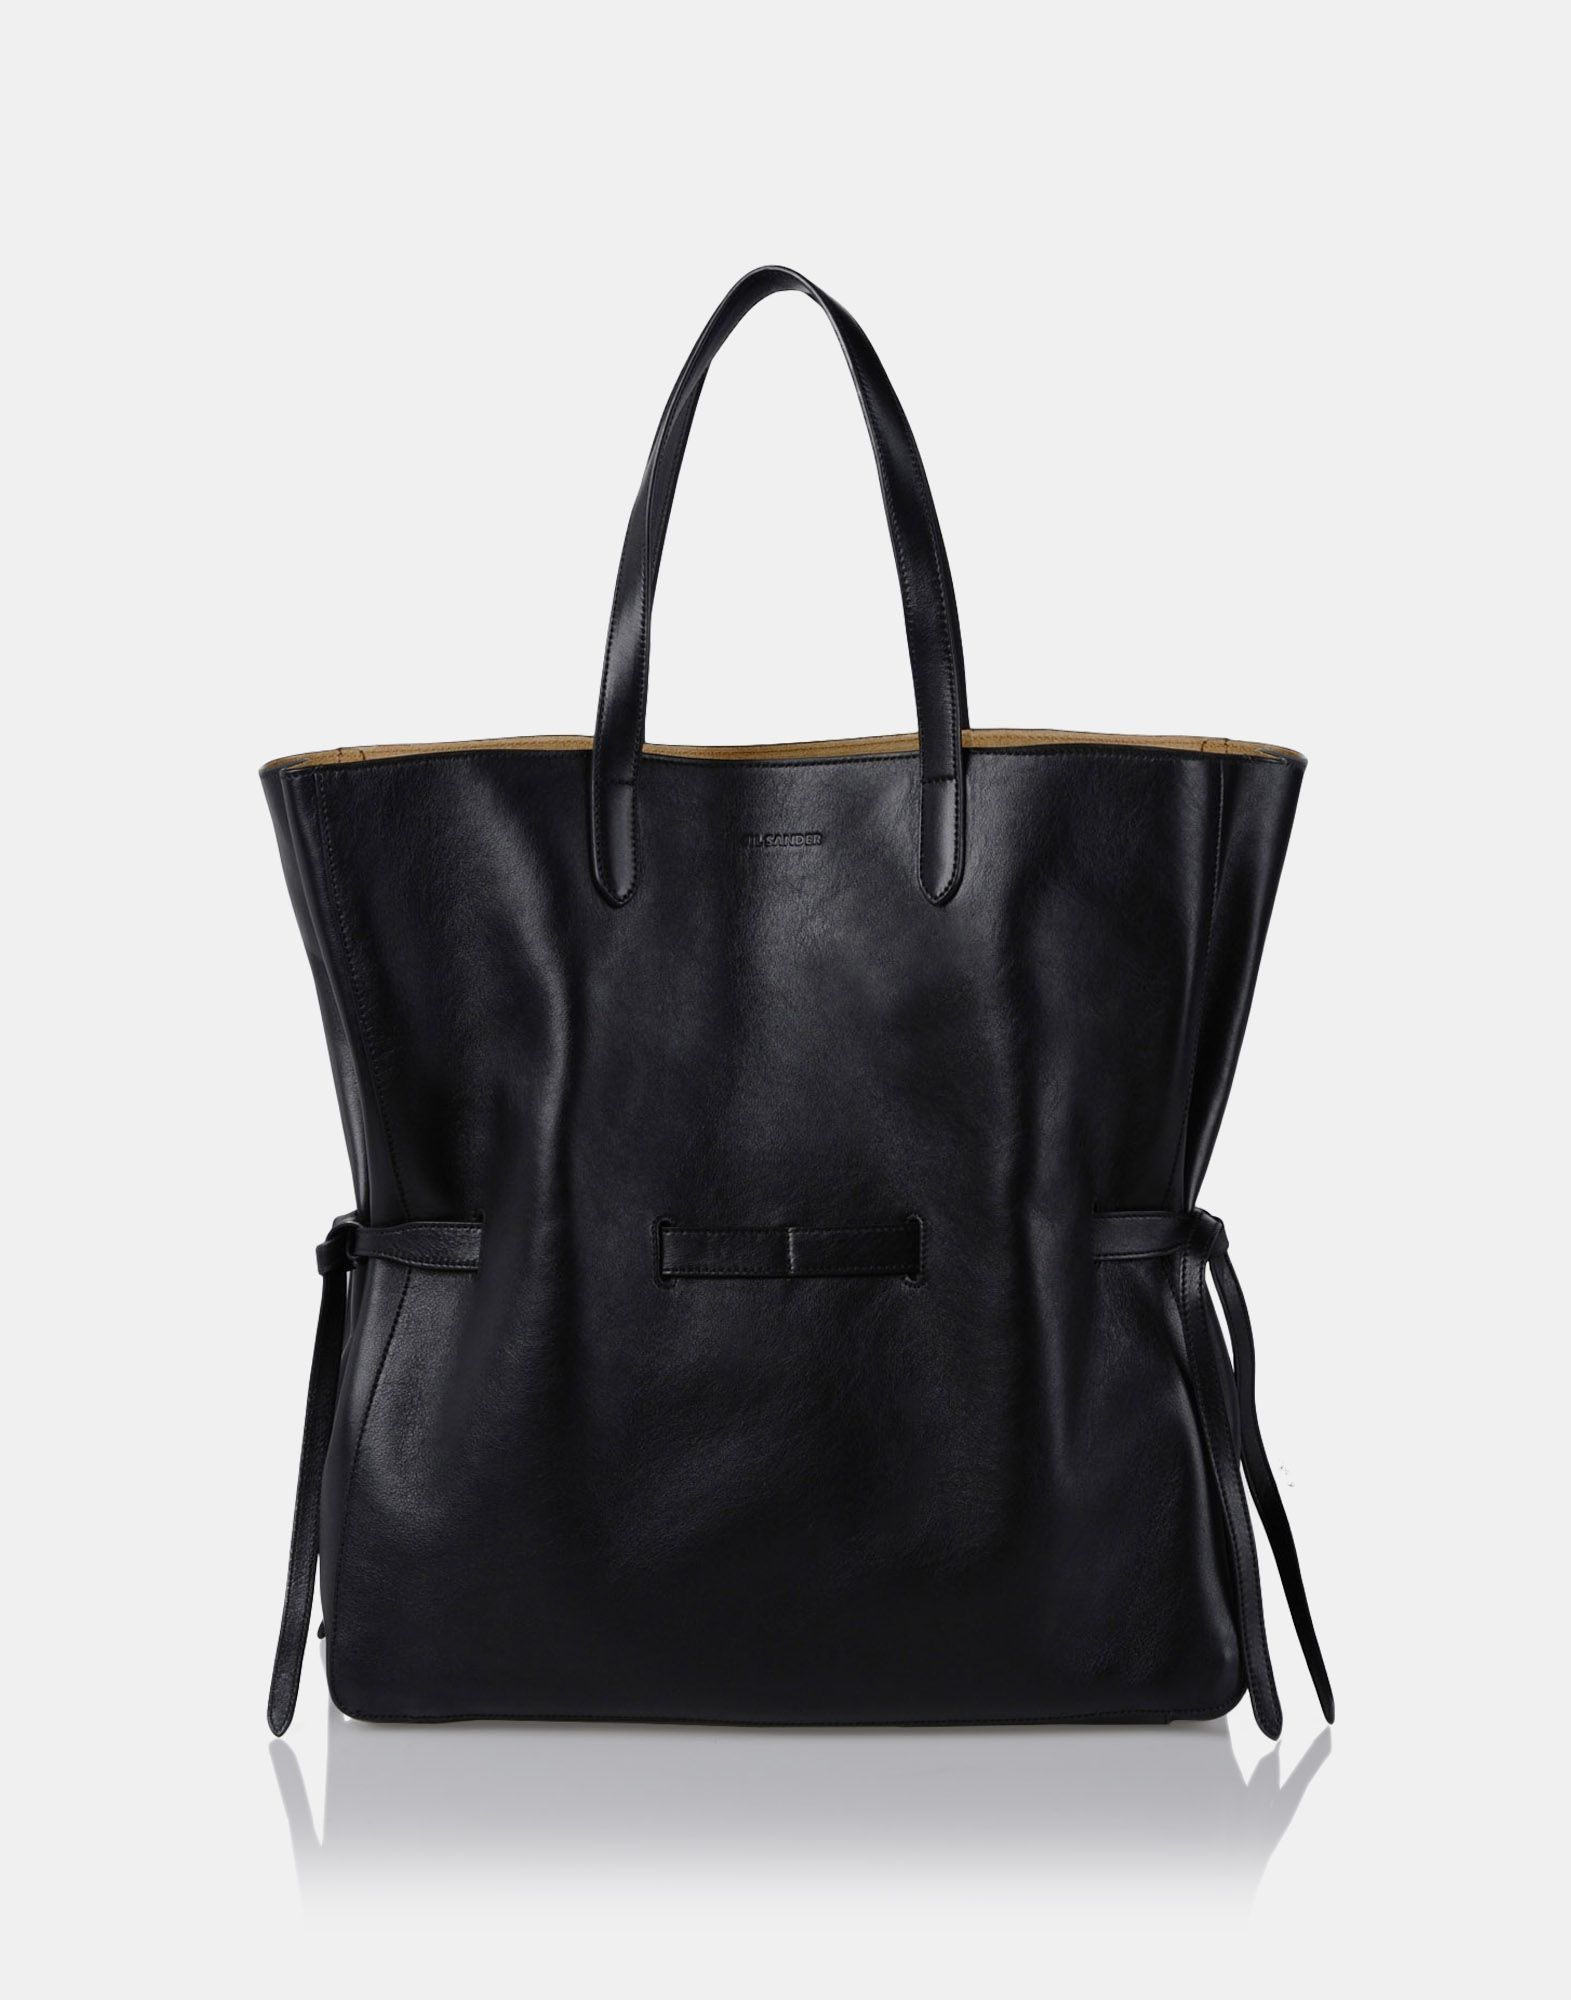 huge selection of 25e04 70466 JIL SANDER | BORSE | Borsa a mano Donna | Dbag | Bags, Jil ...